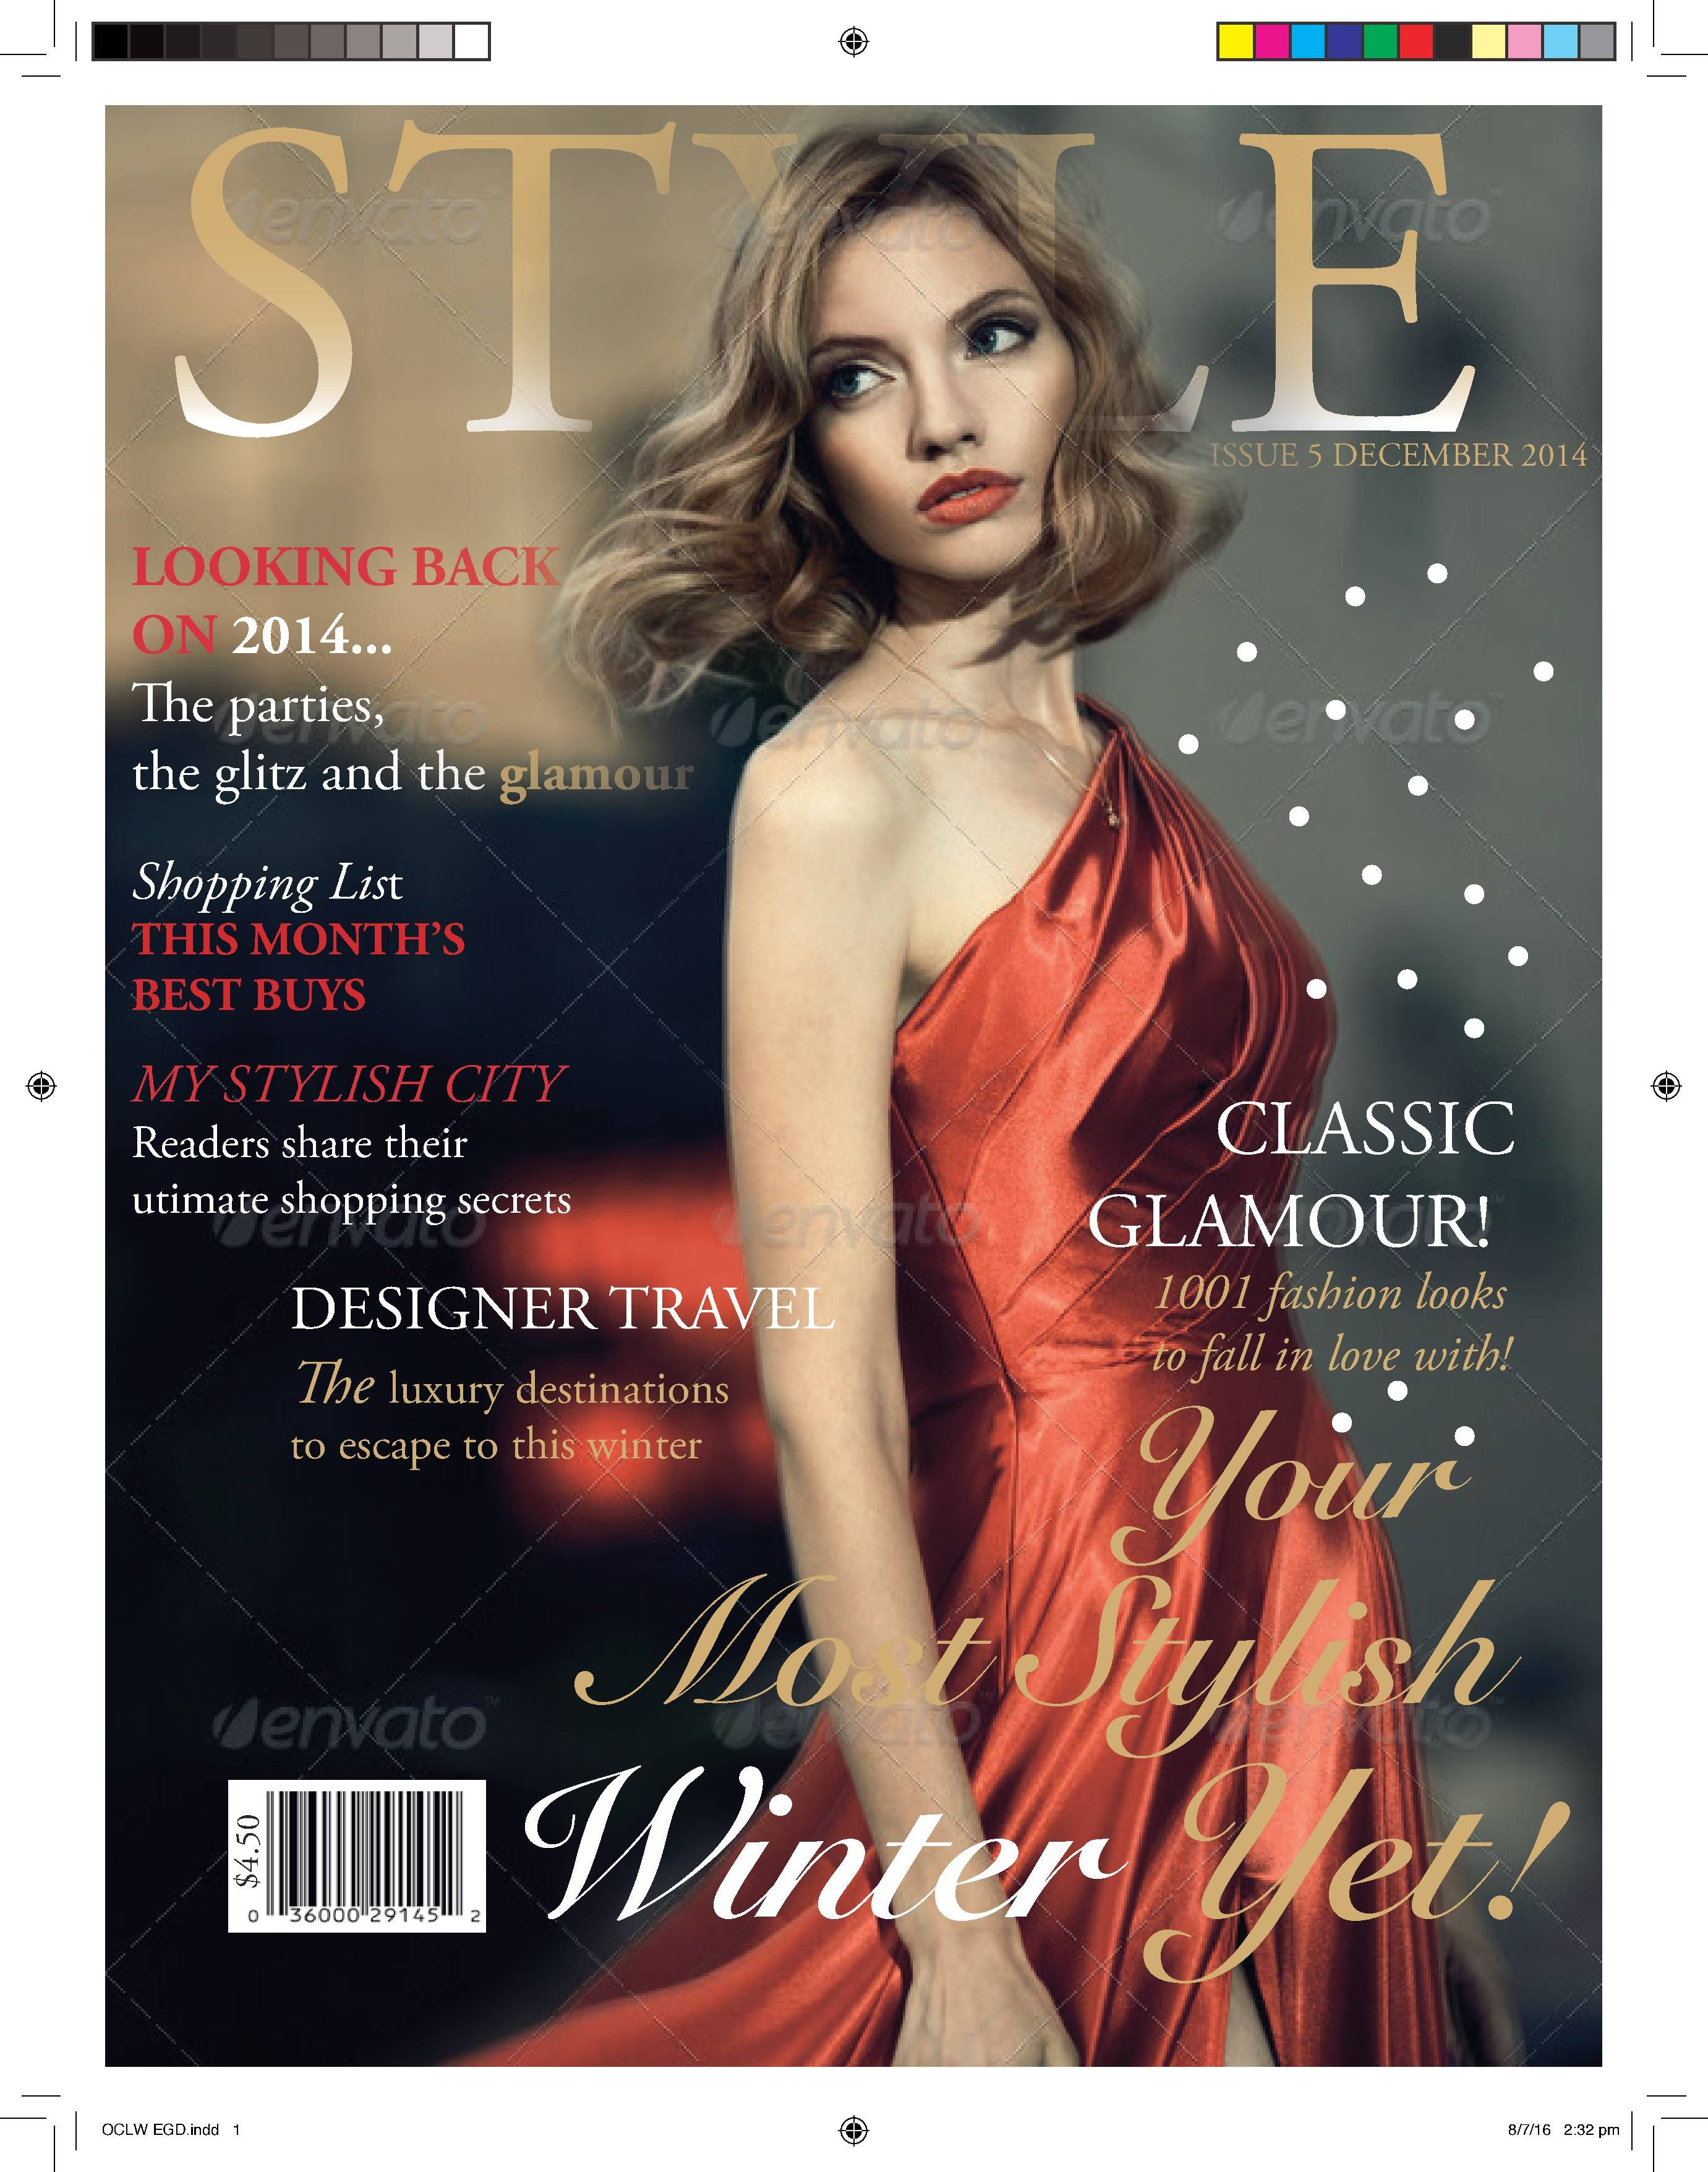 Pin By Pang Yong Lun On Tutorial 11 Editorial Design 2 Magazine Layout Fashion Magazine Cover Magazine Cover Design Indesign Tutorials